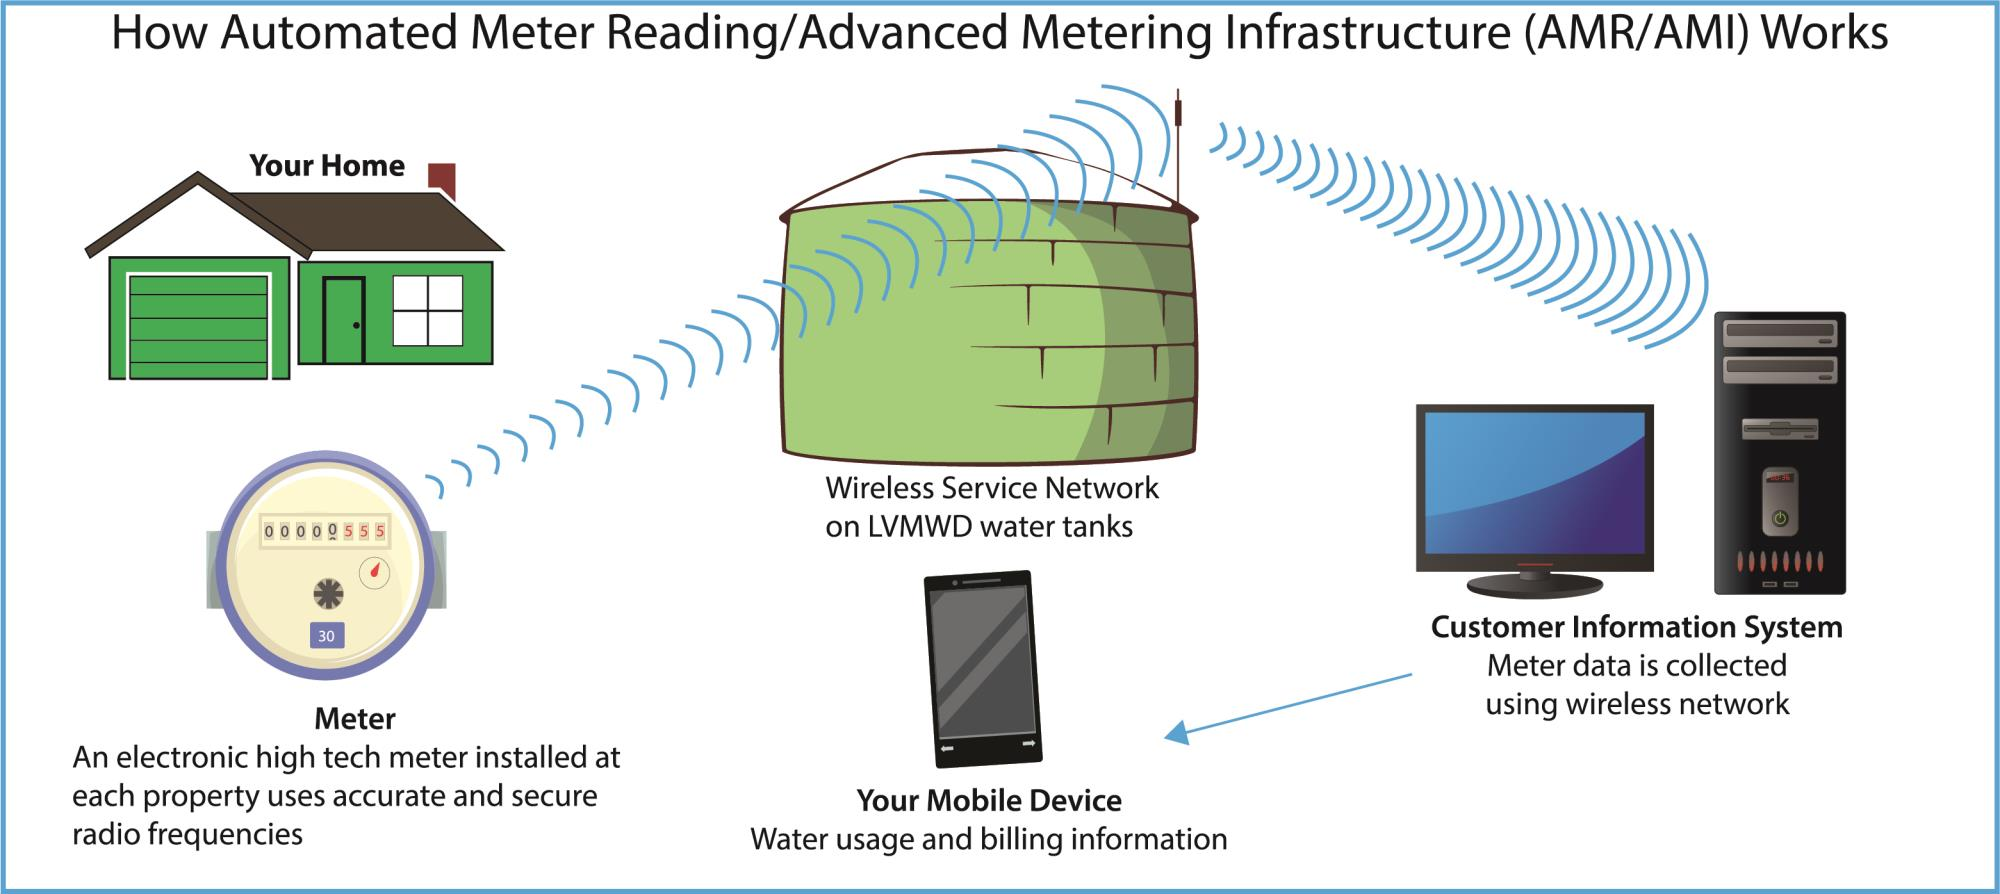 How Automated Meter Reading/Advanced Metering Infrastructure (AMR/AMI) Works